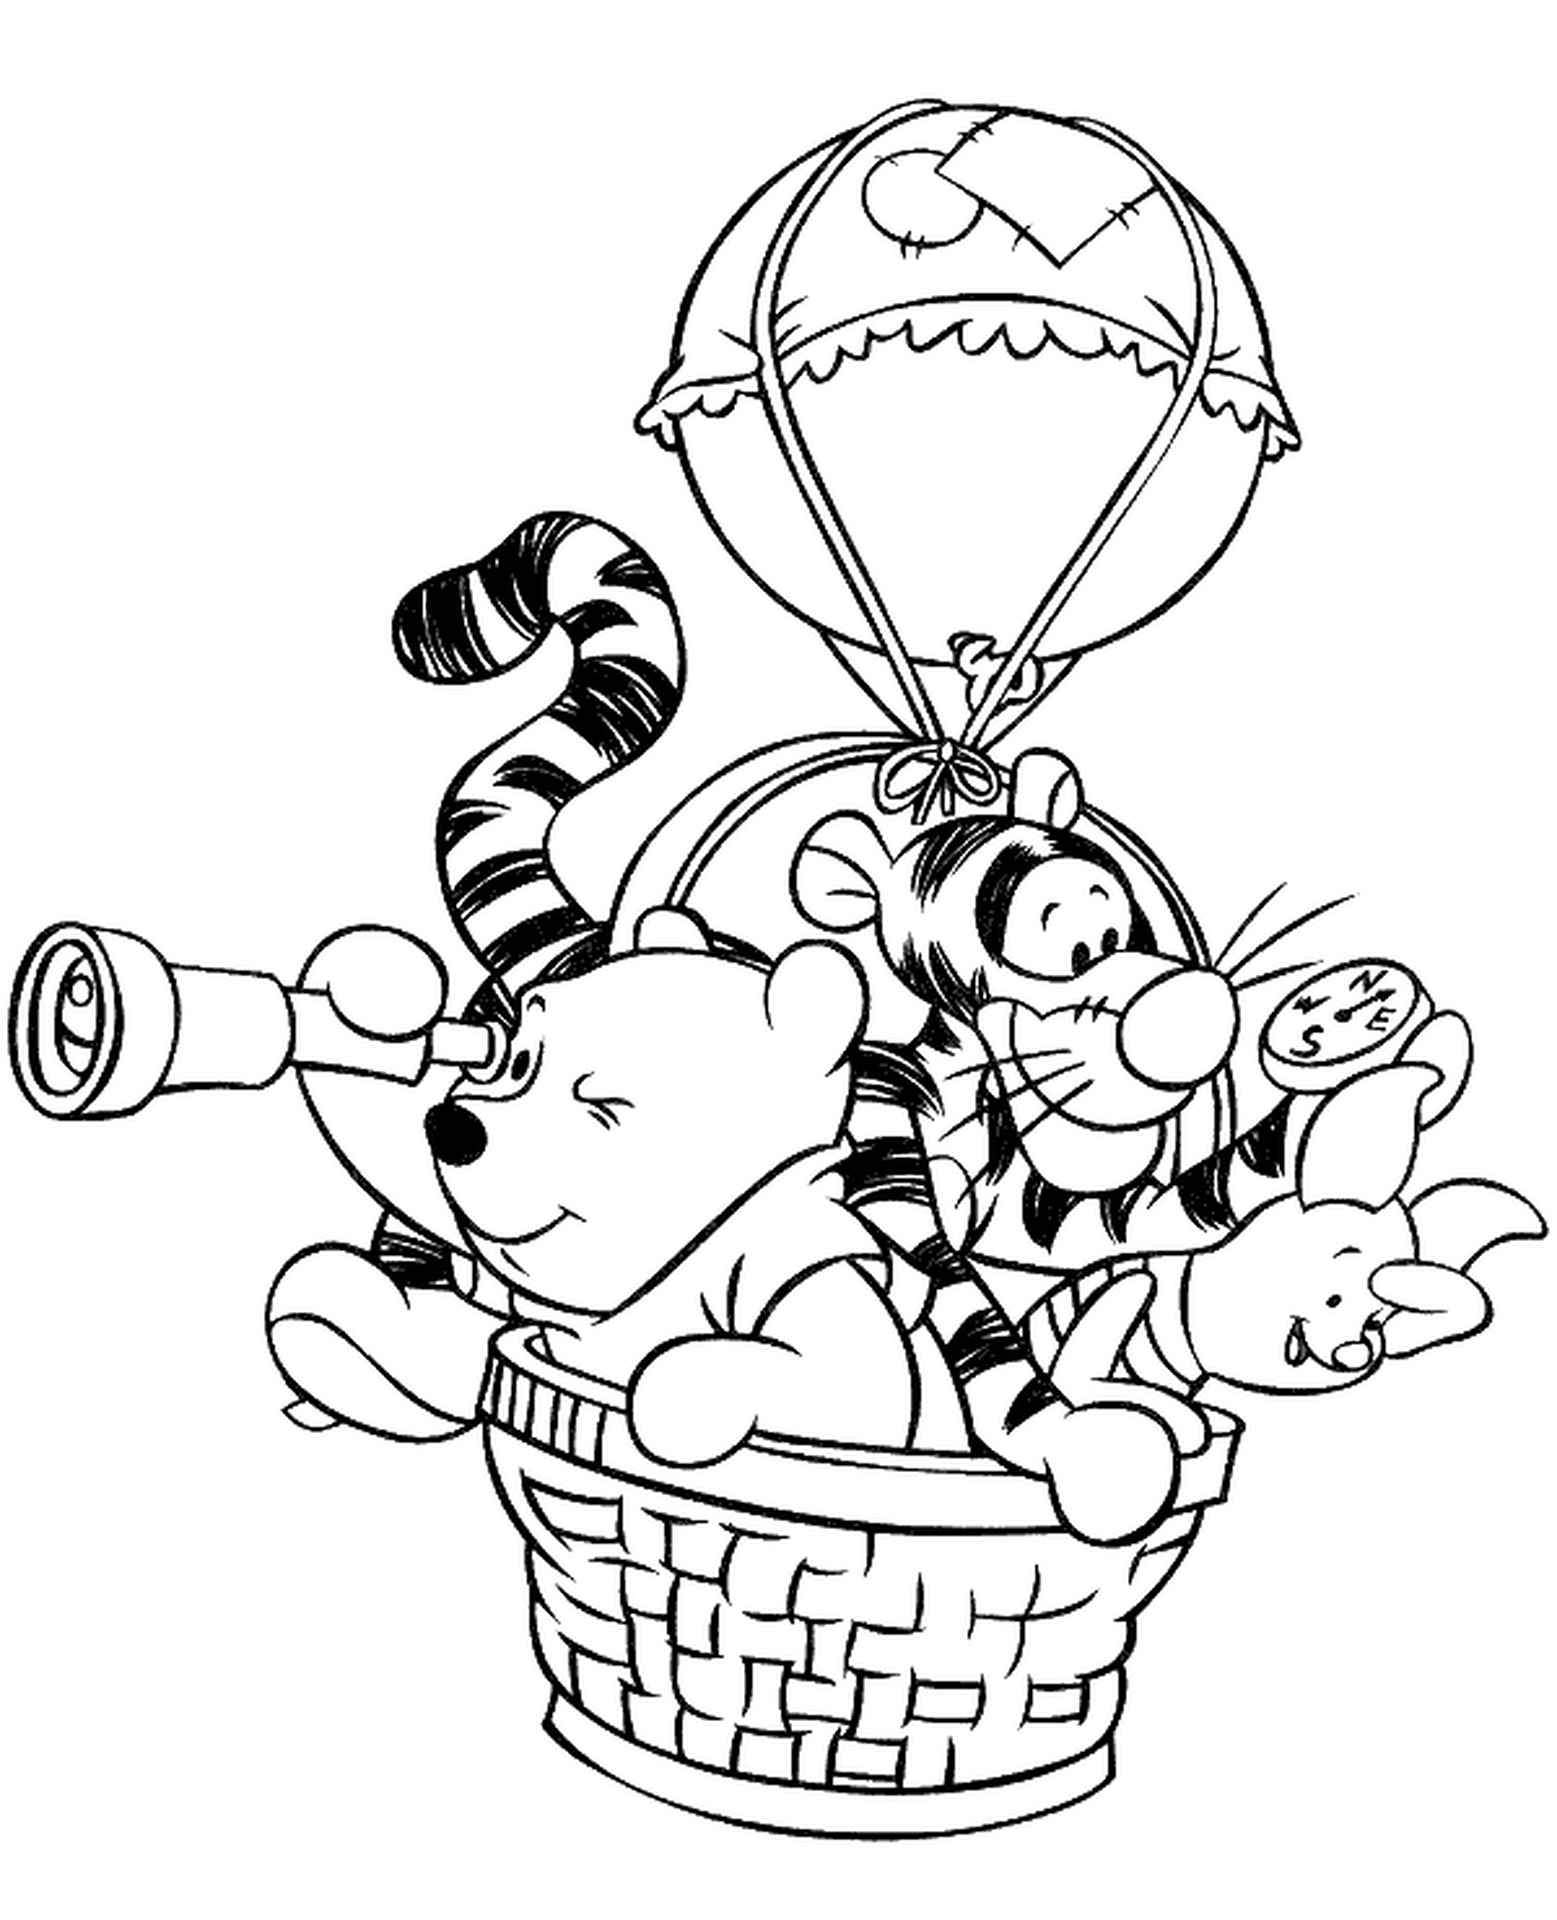 Winnie Pooh, Tigger And Piglet Coloring Book